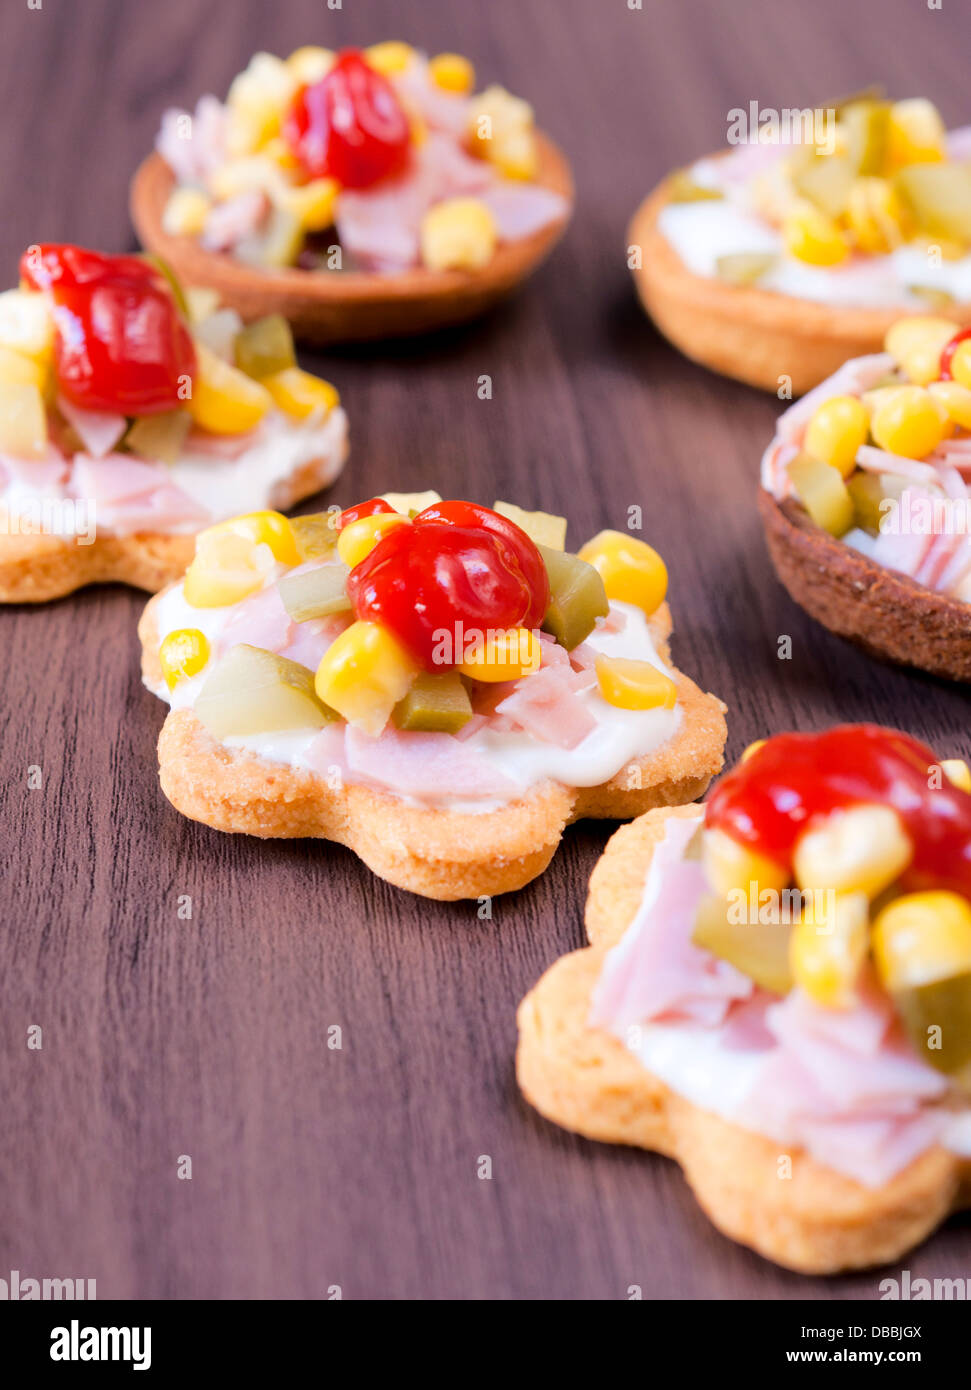 Selective focus on little snack in the middle - Stock Image